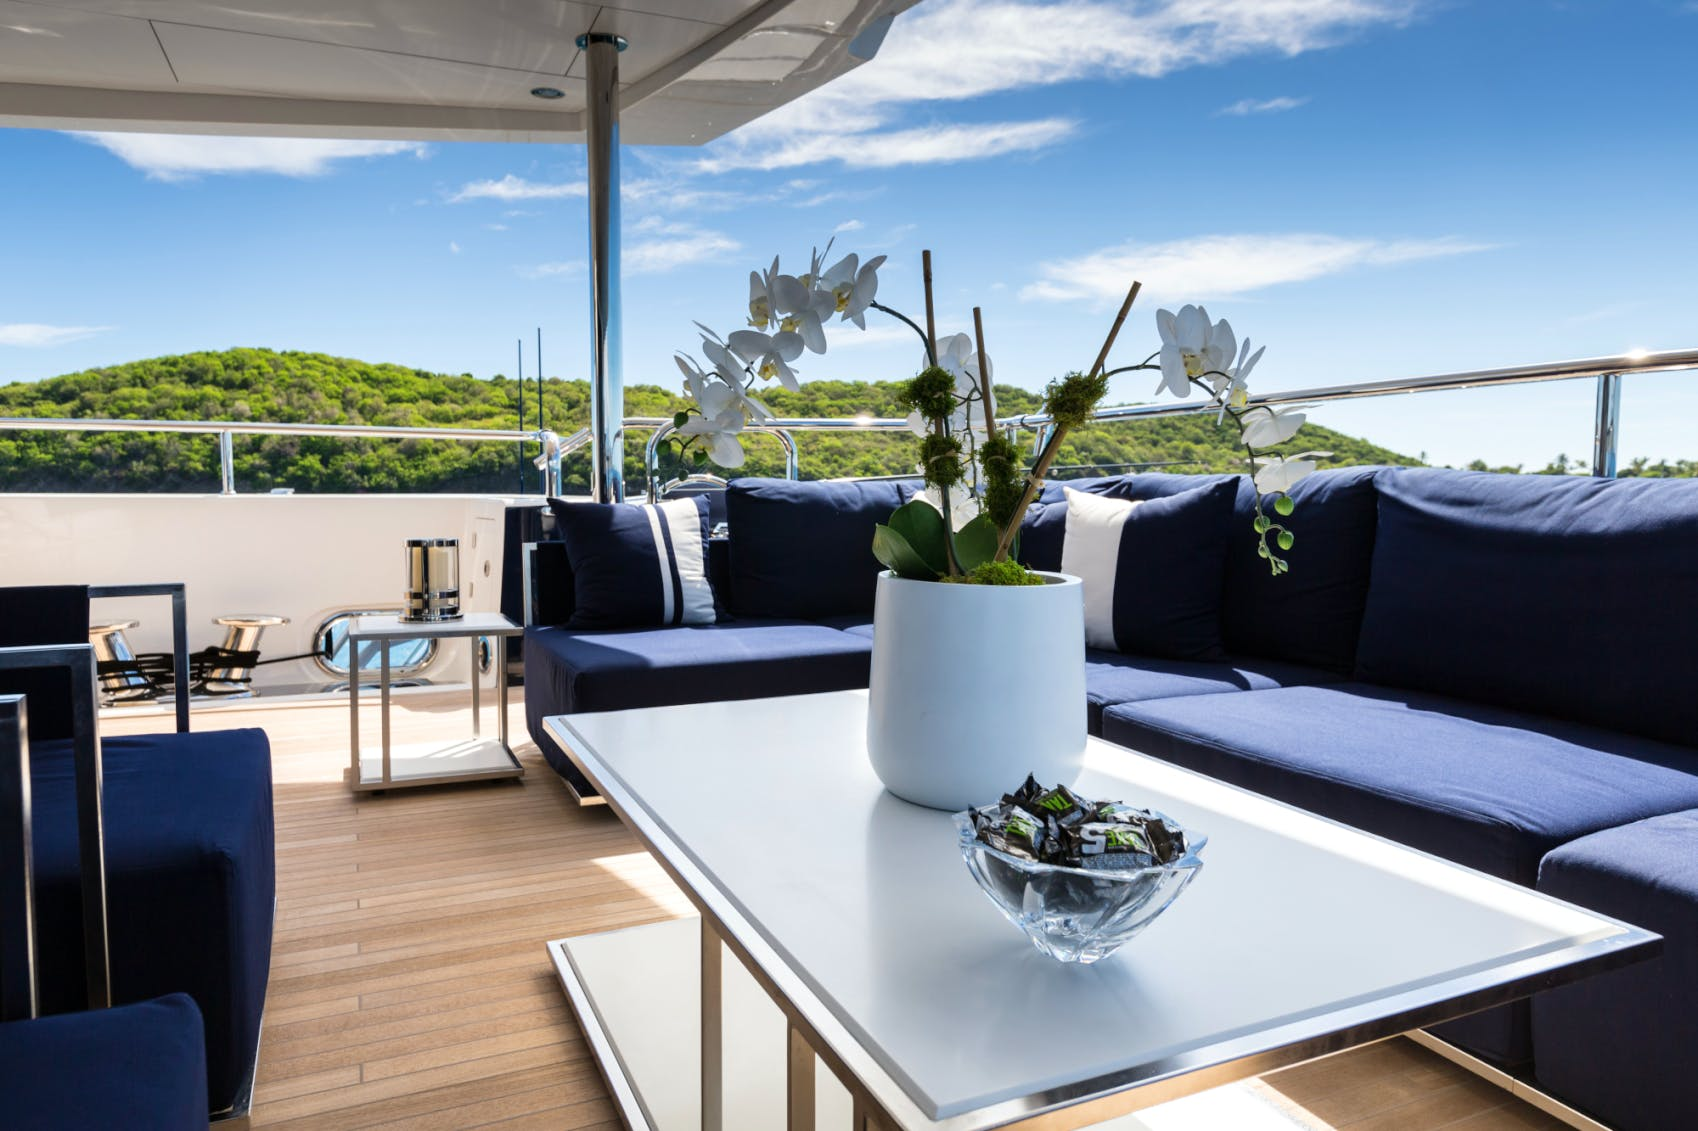 Seasonal Rates for TAKE 5 Private Luxury Yacht For Charter